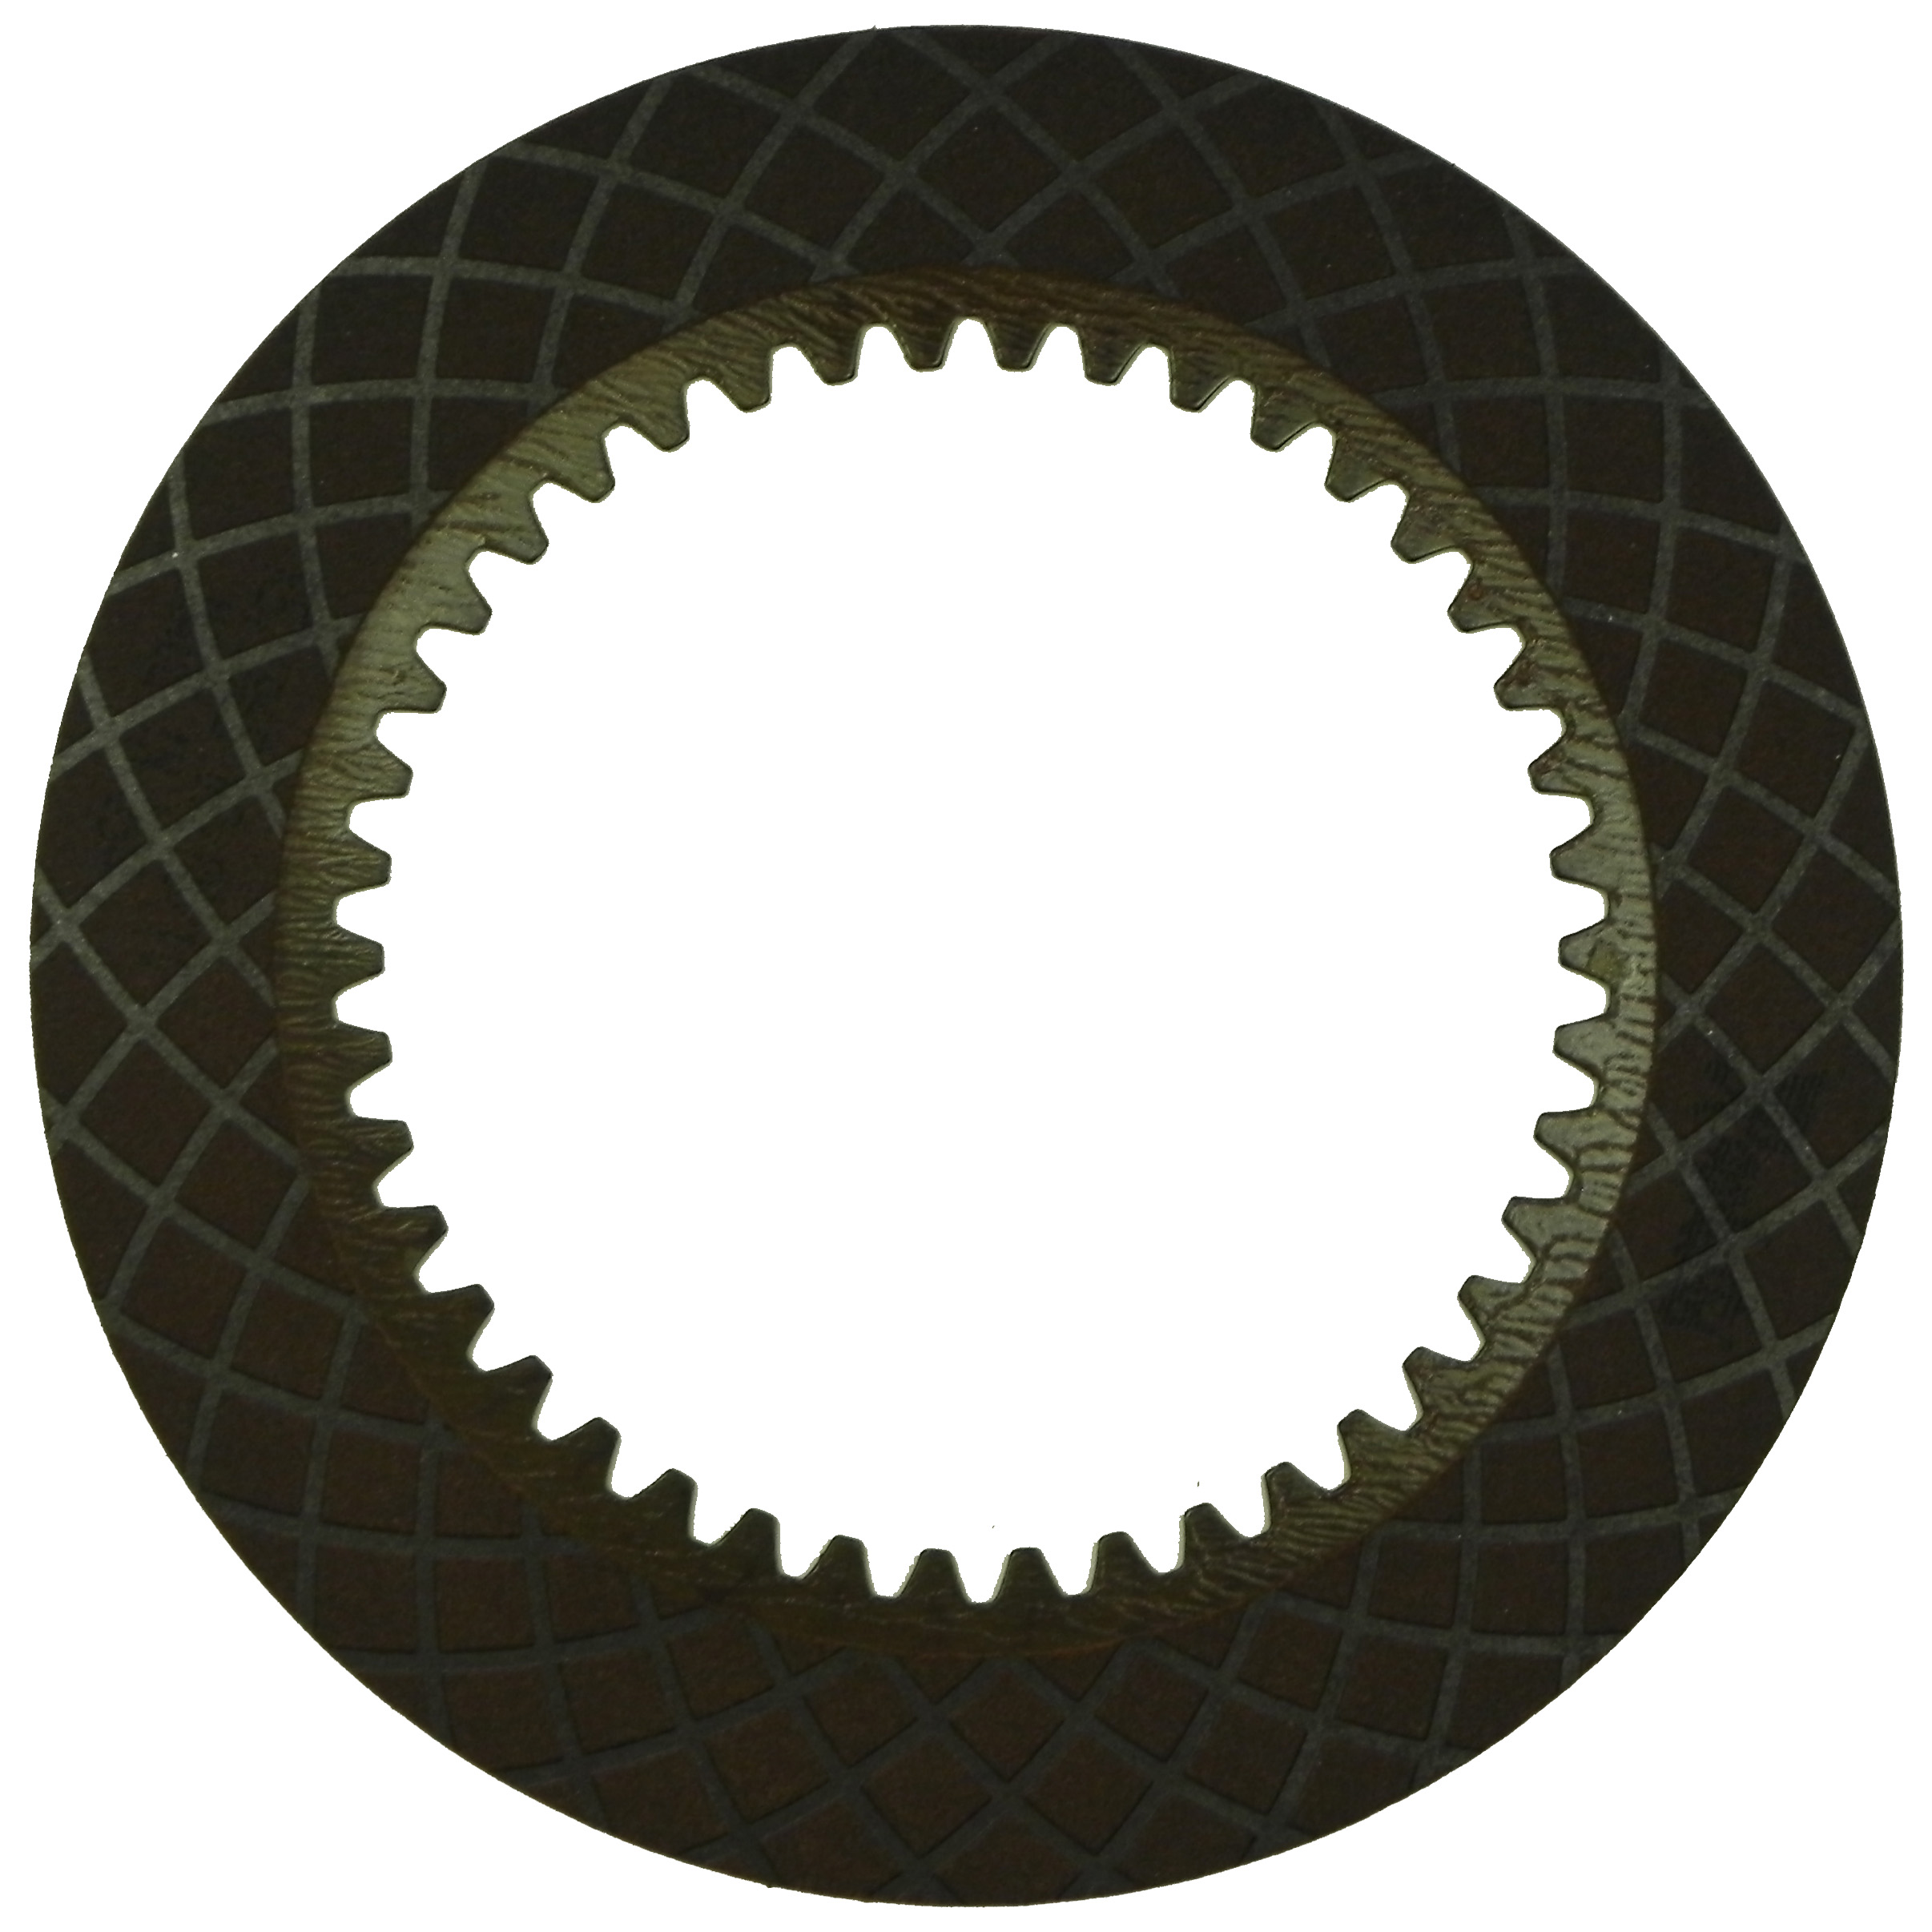 R571865 | 2003-2005 Friction Clutch Plate GPX 3rd GPX